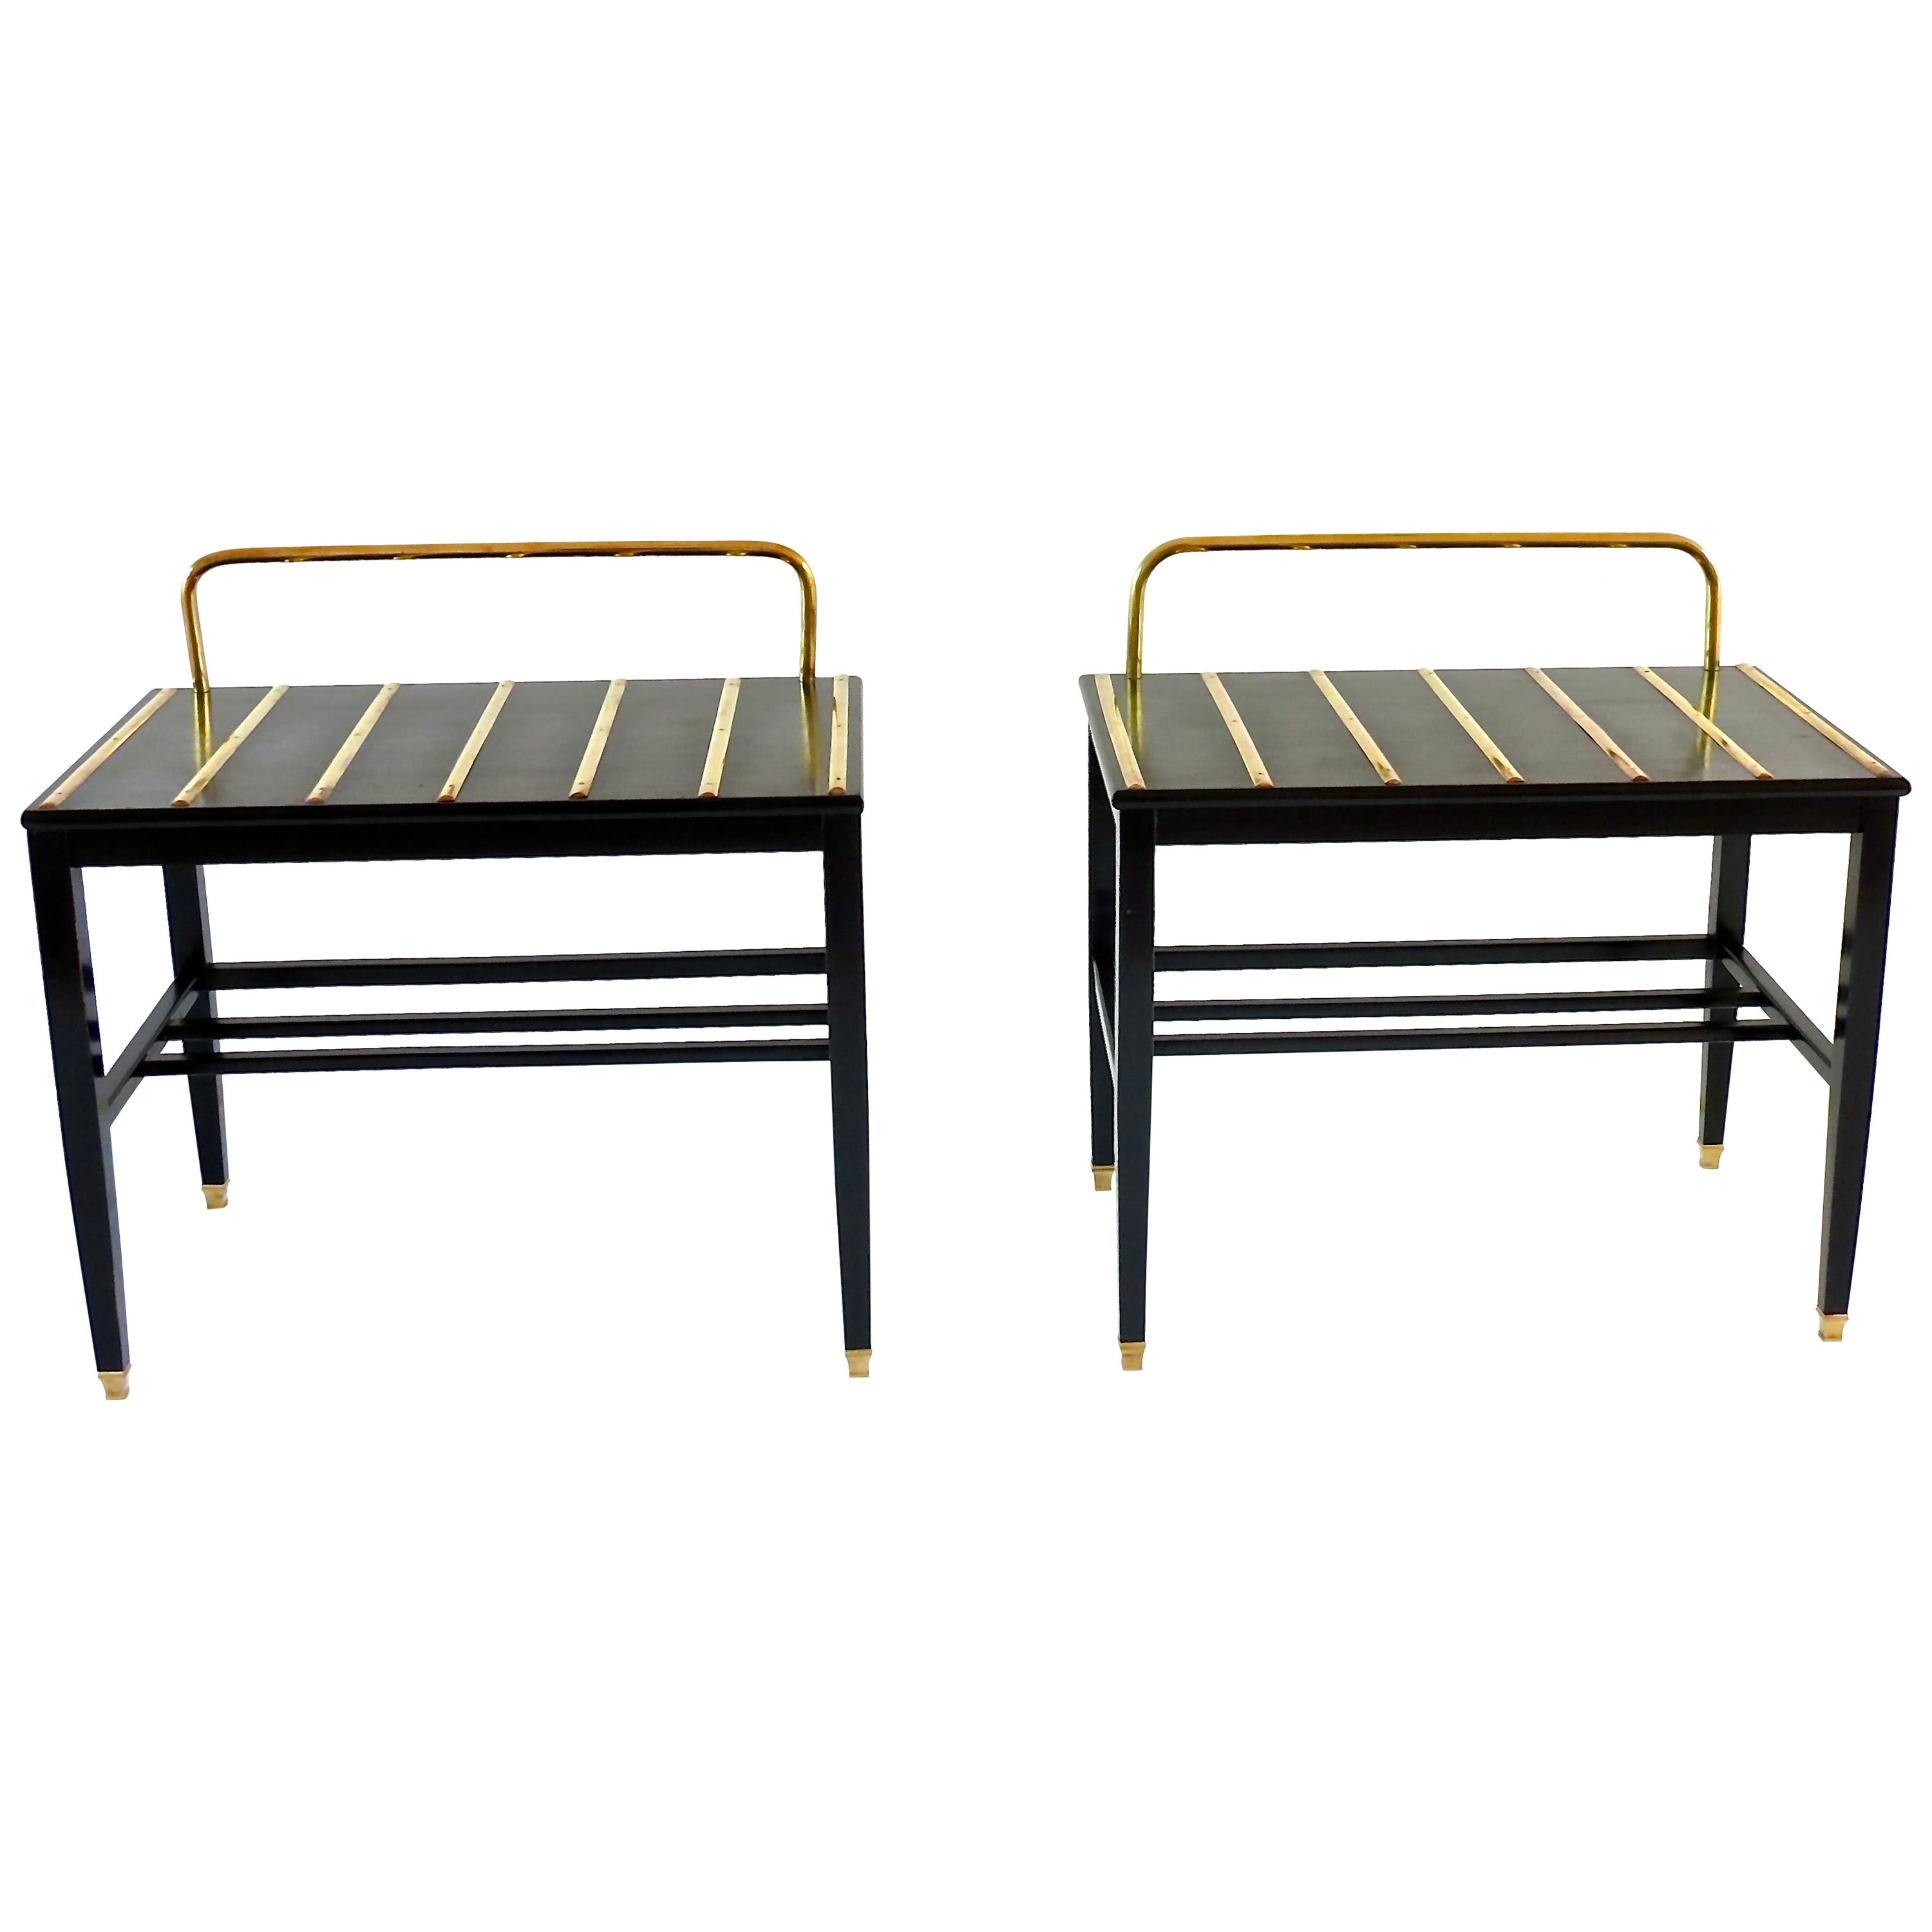 Pair of Gio Ponti Black Walnut Lacquered Side Tables from Hotel Royal Naples